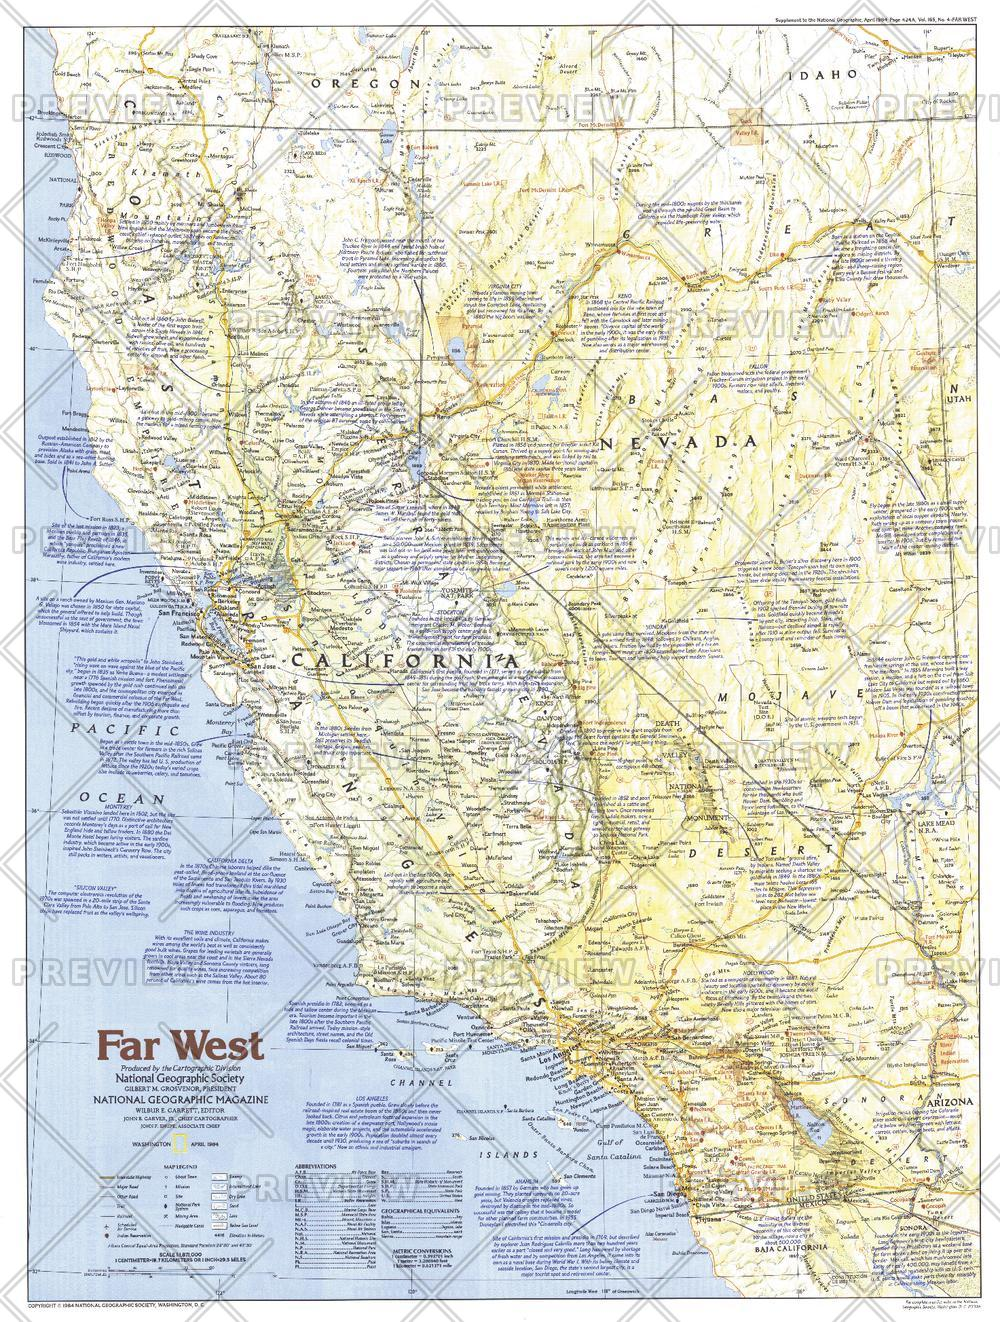 Making of America, Far West  -  Published 1984